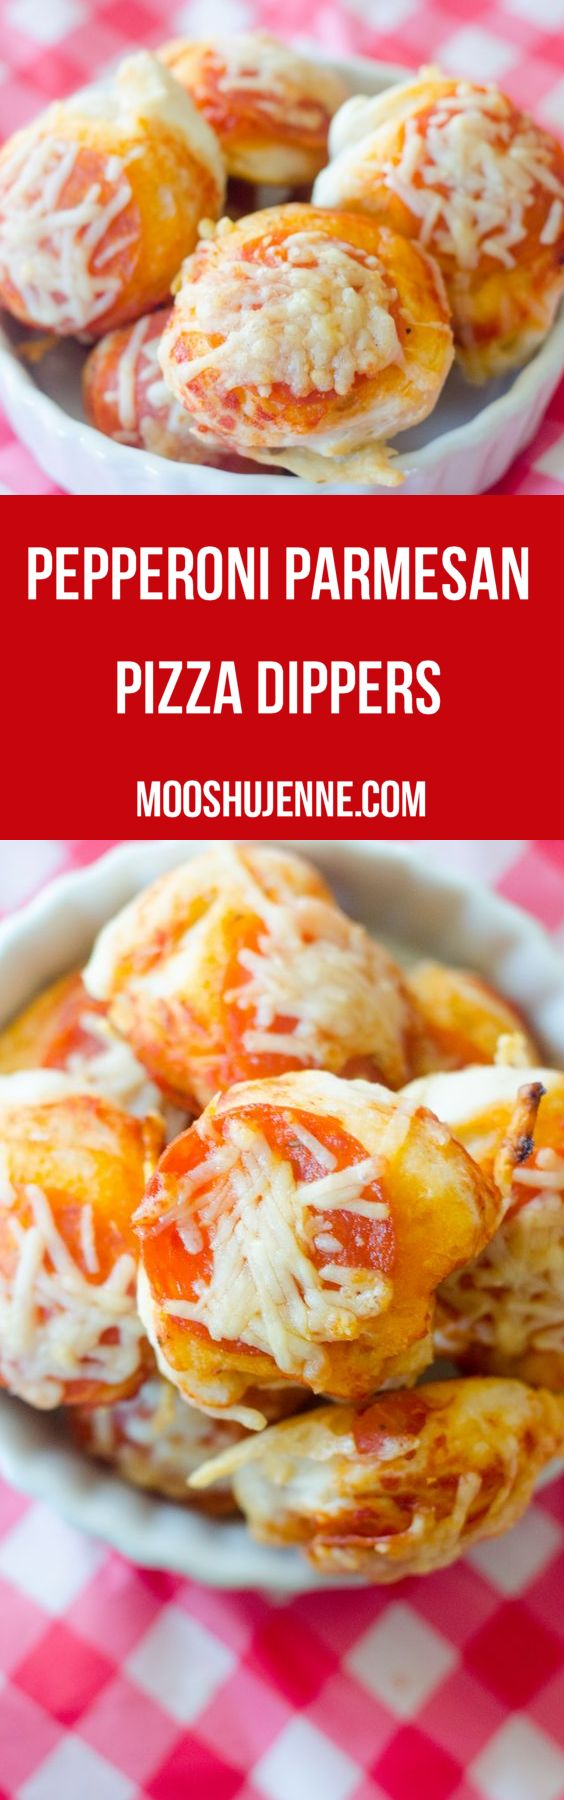 Pepperoni Parmesan Pizza Dippers